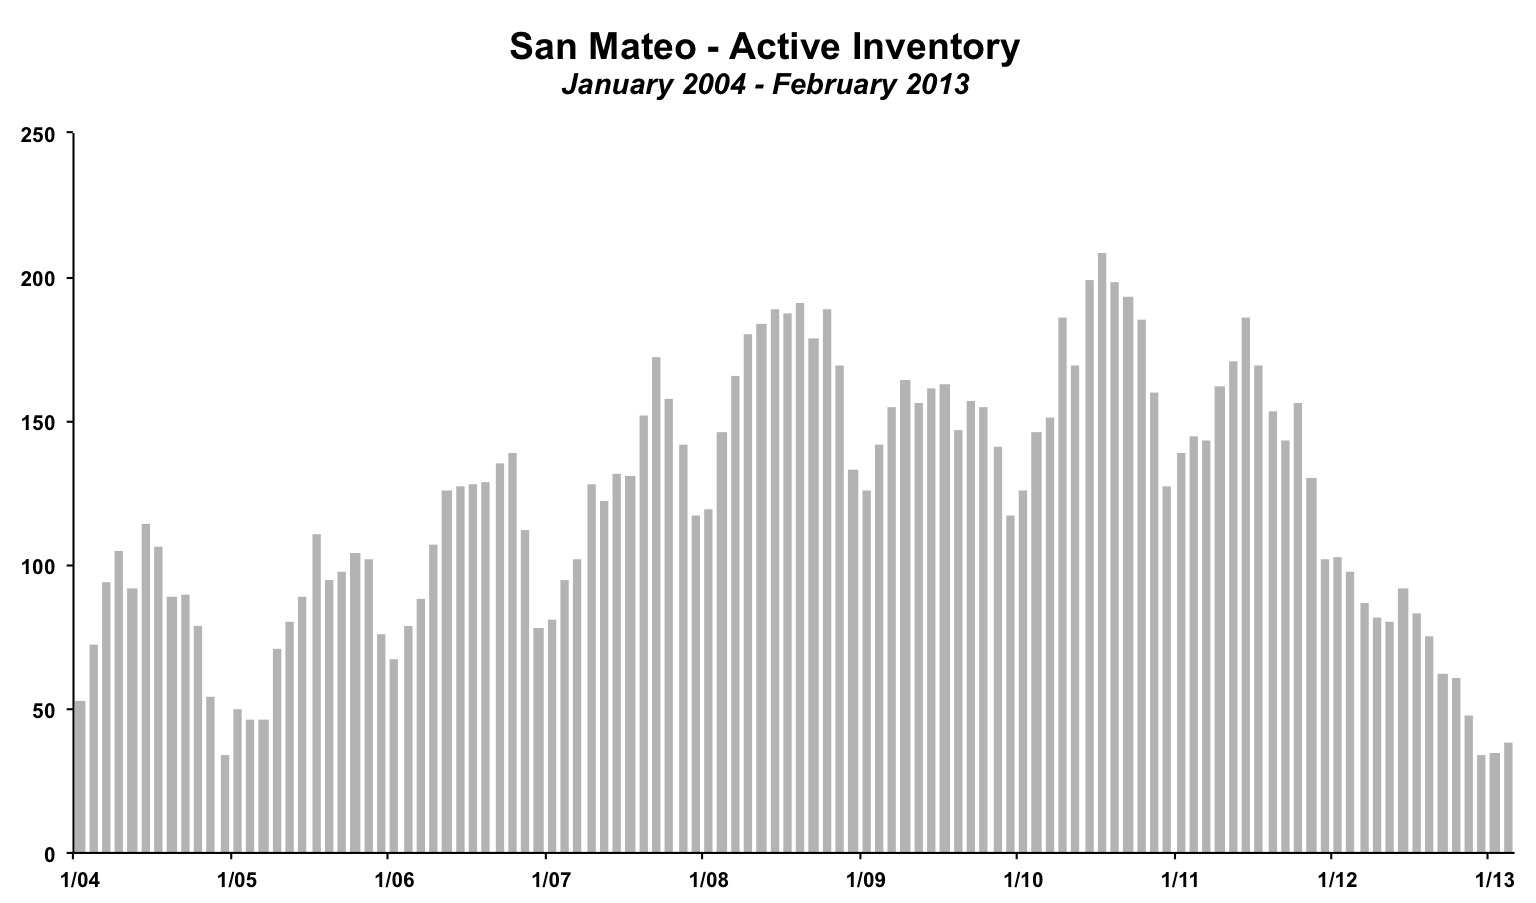 San Mateo Active Inventory February 2013